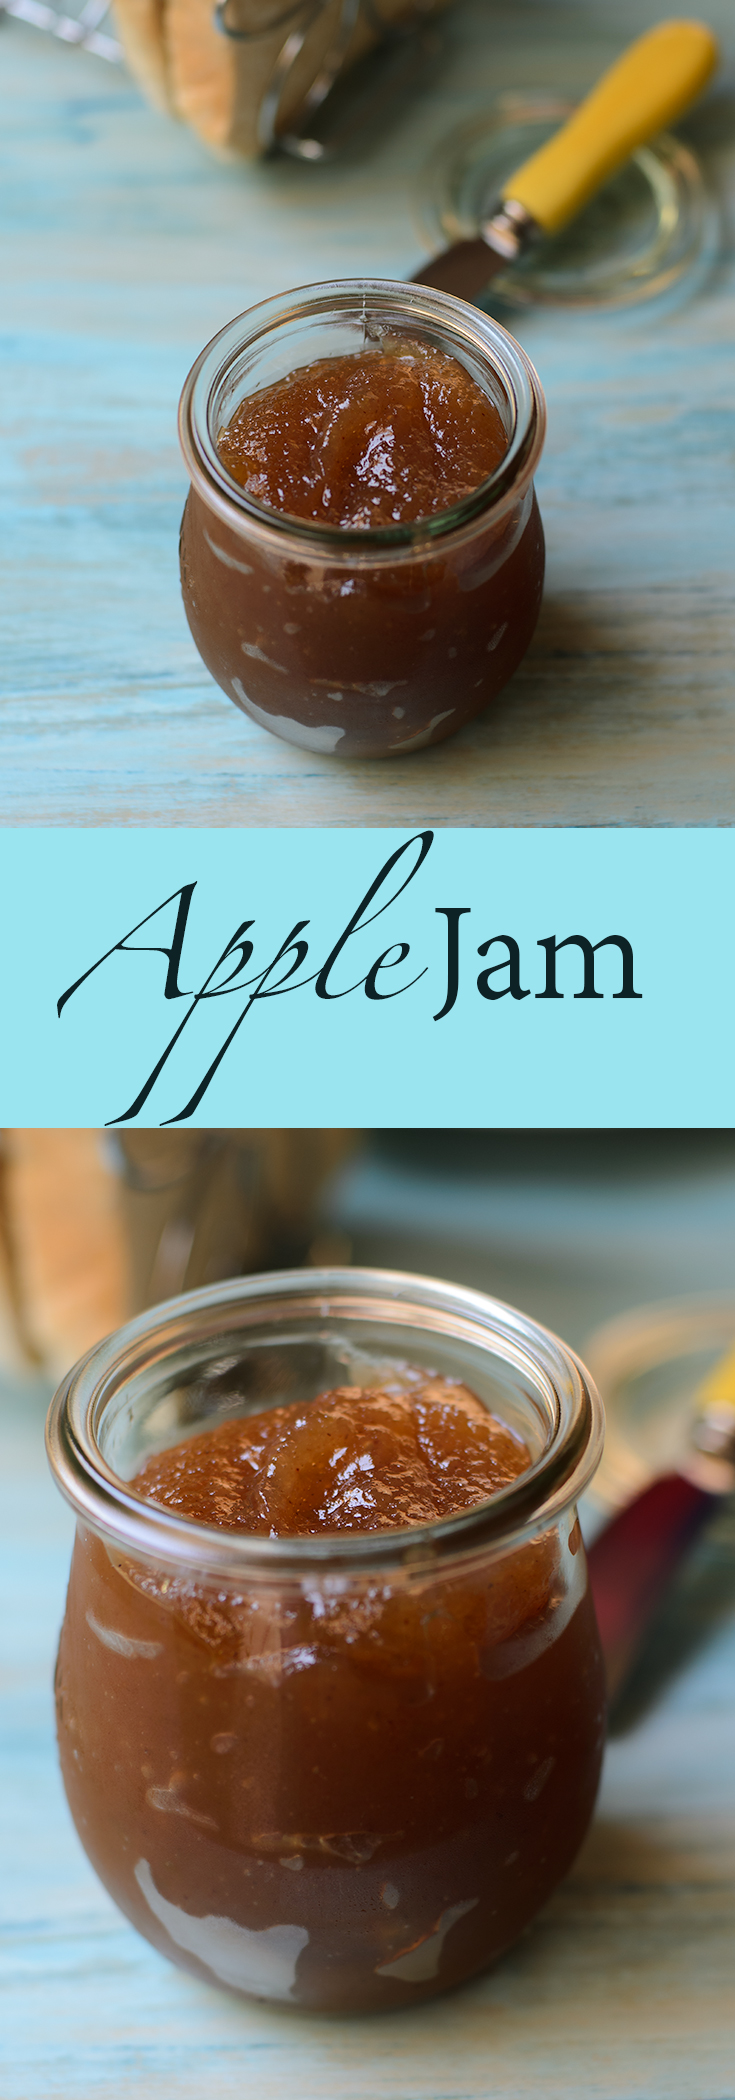 Homemade apple jam recipe. Apple jam or also known as apple butter, marvellous to serve with scones or just spread on buttered toast.